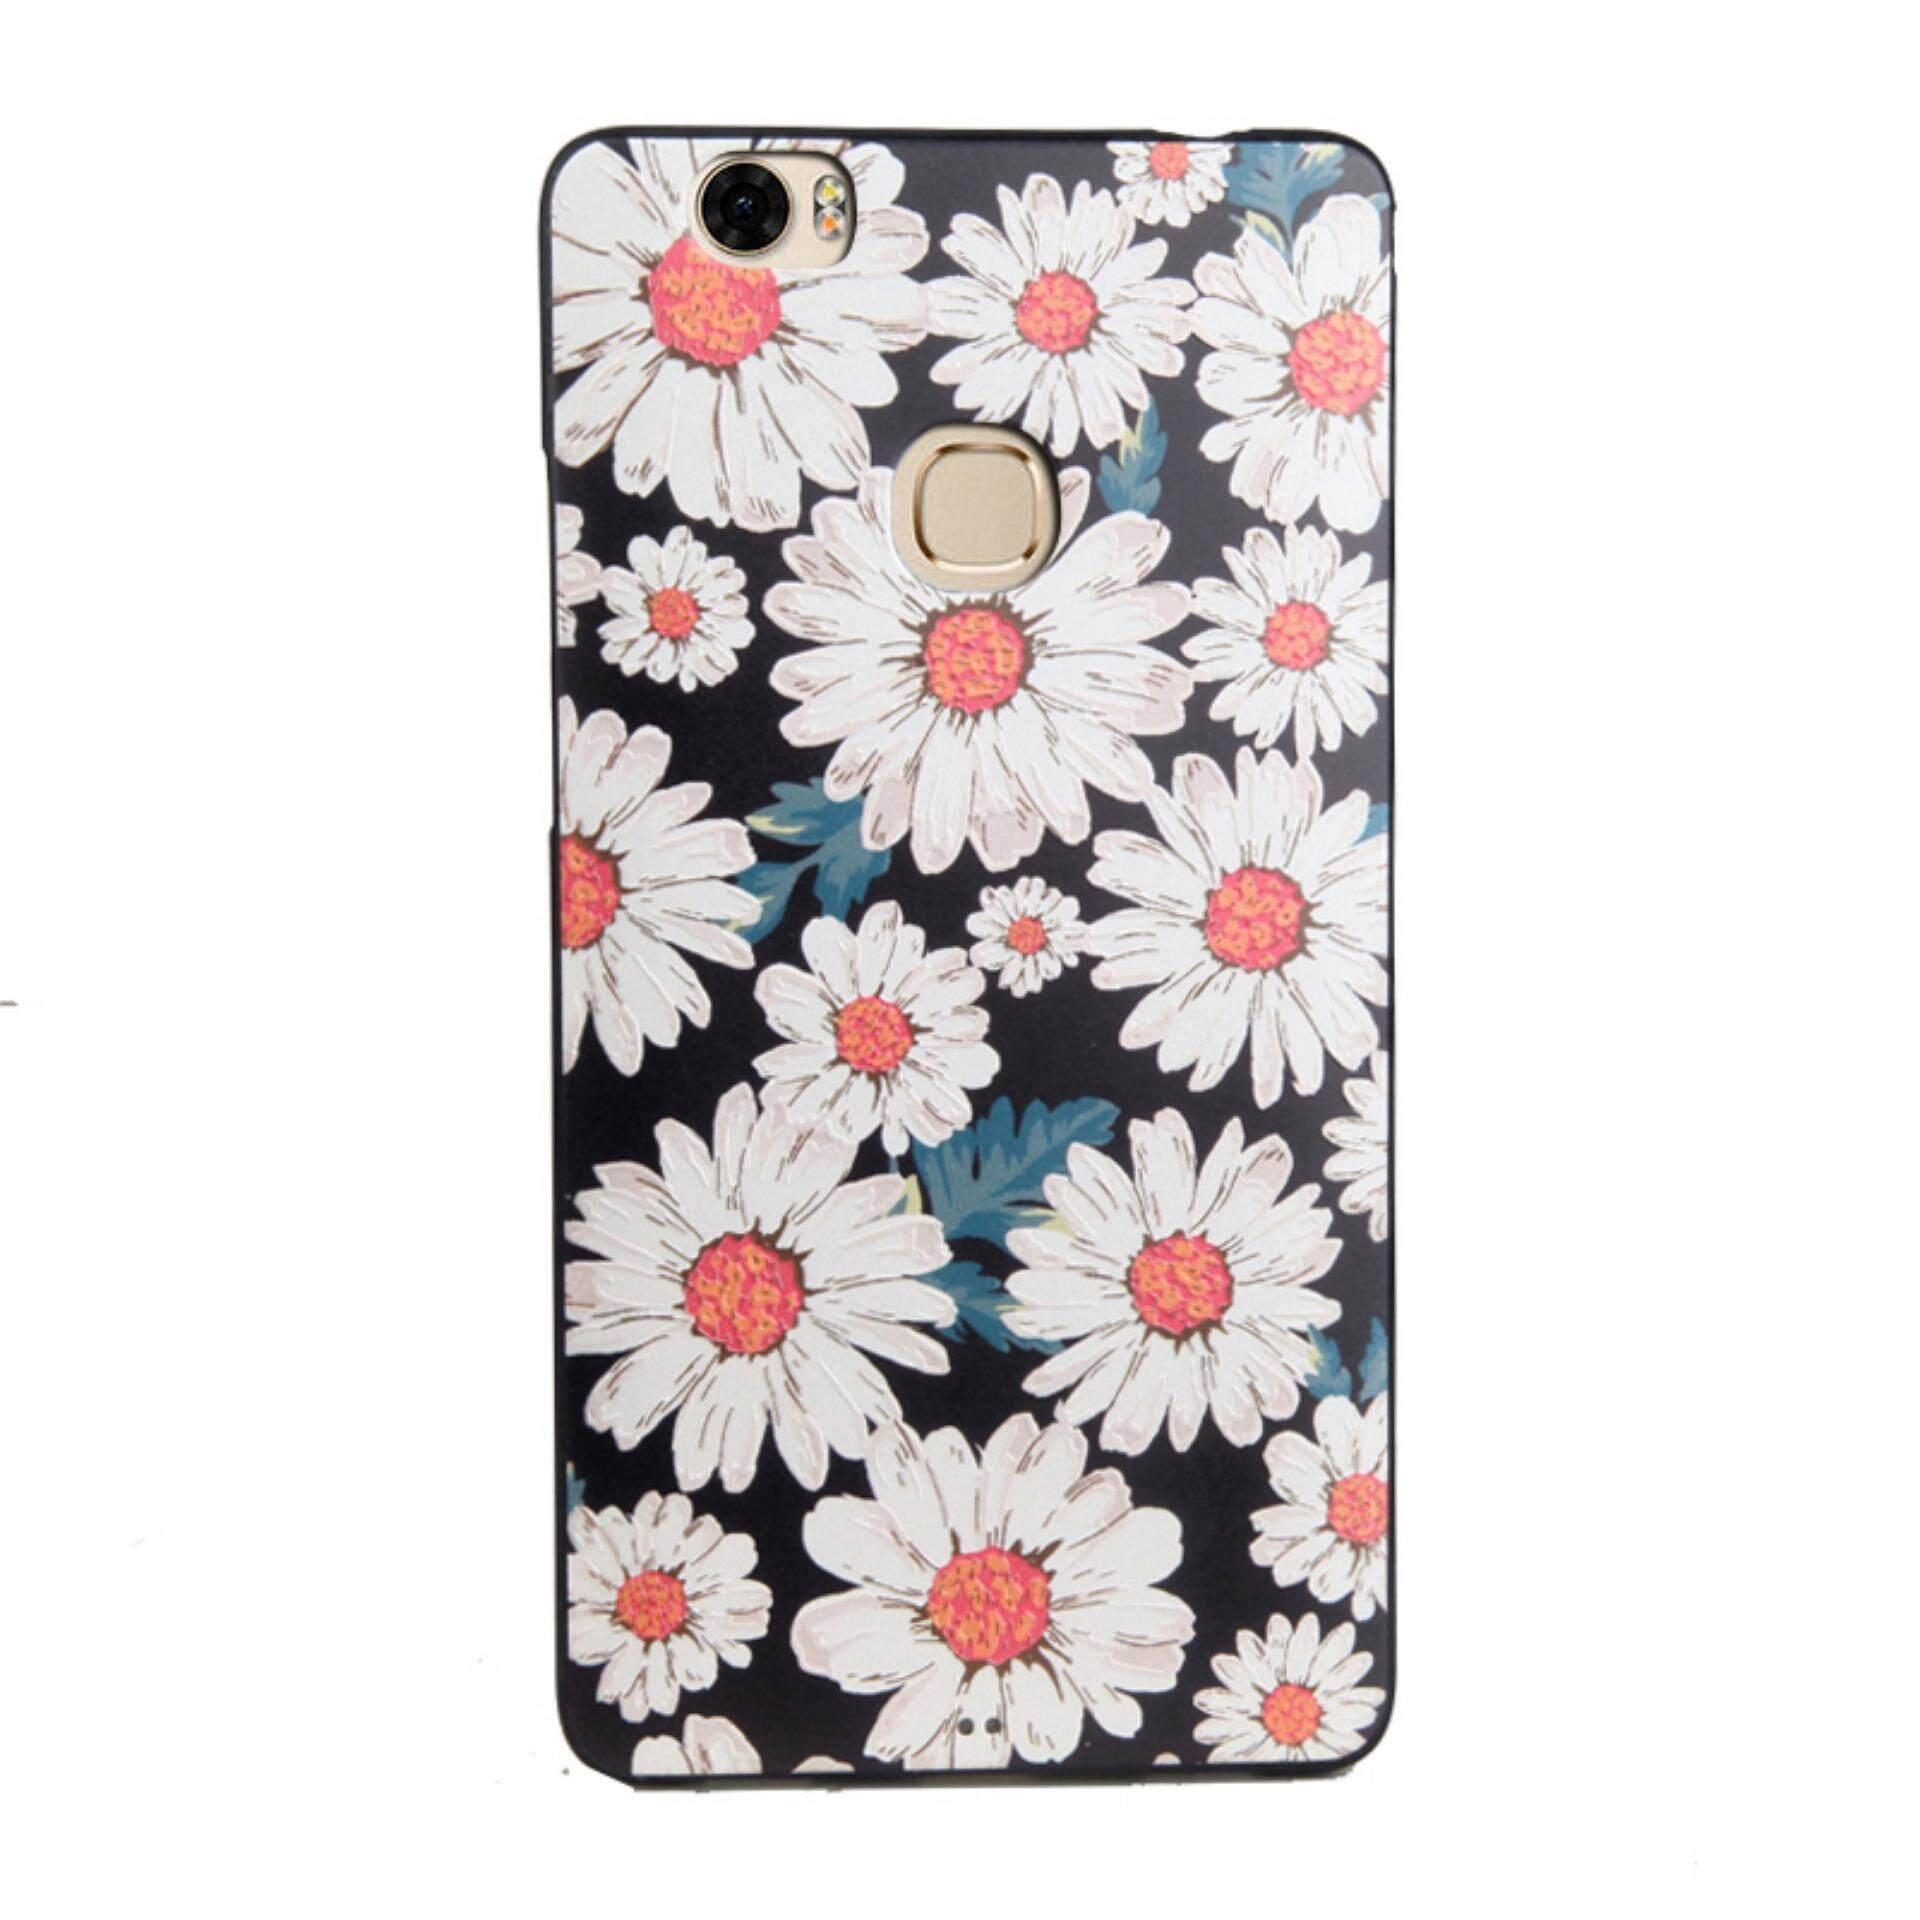 Bogdana for Huawei Honor Note 8 Case Soft TPU 3D Painted Emboss Phone Case (daisy